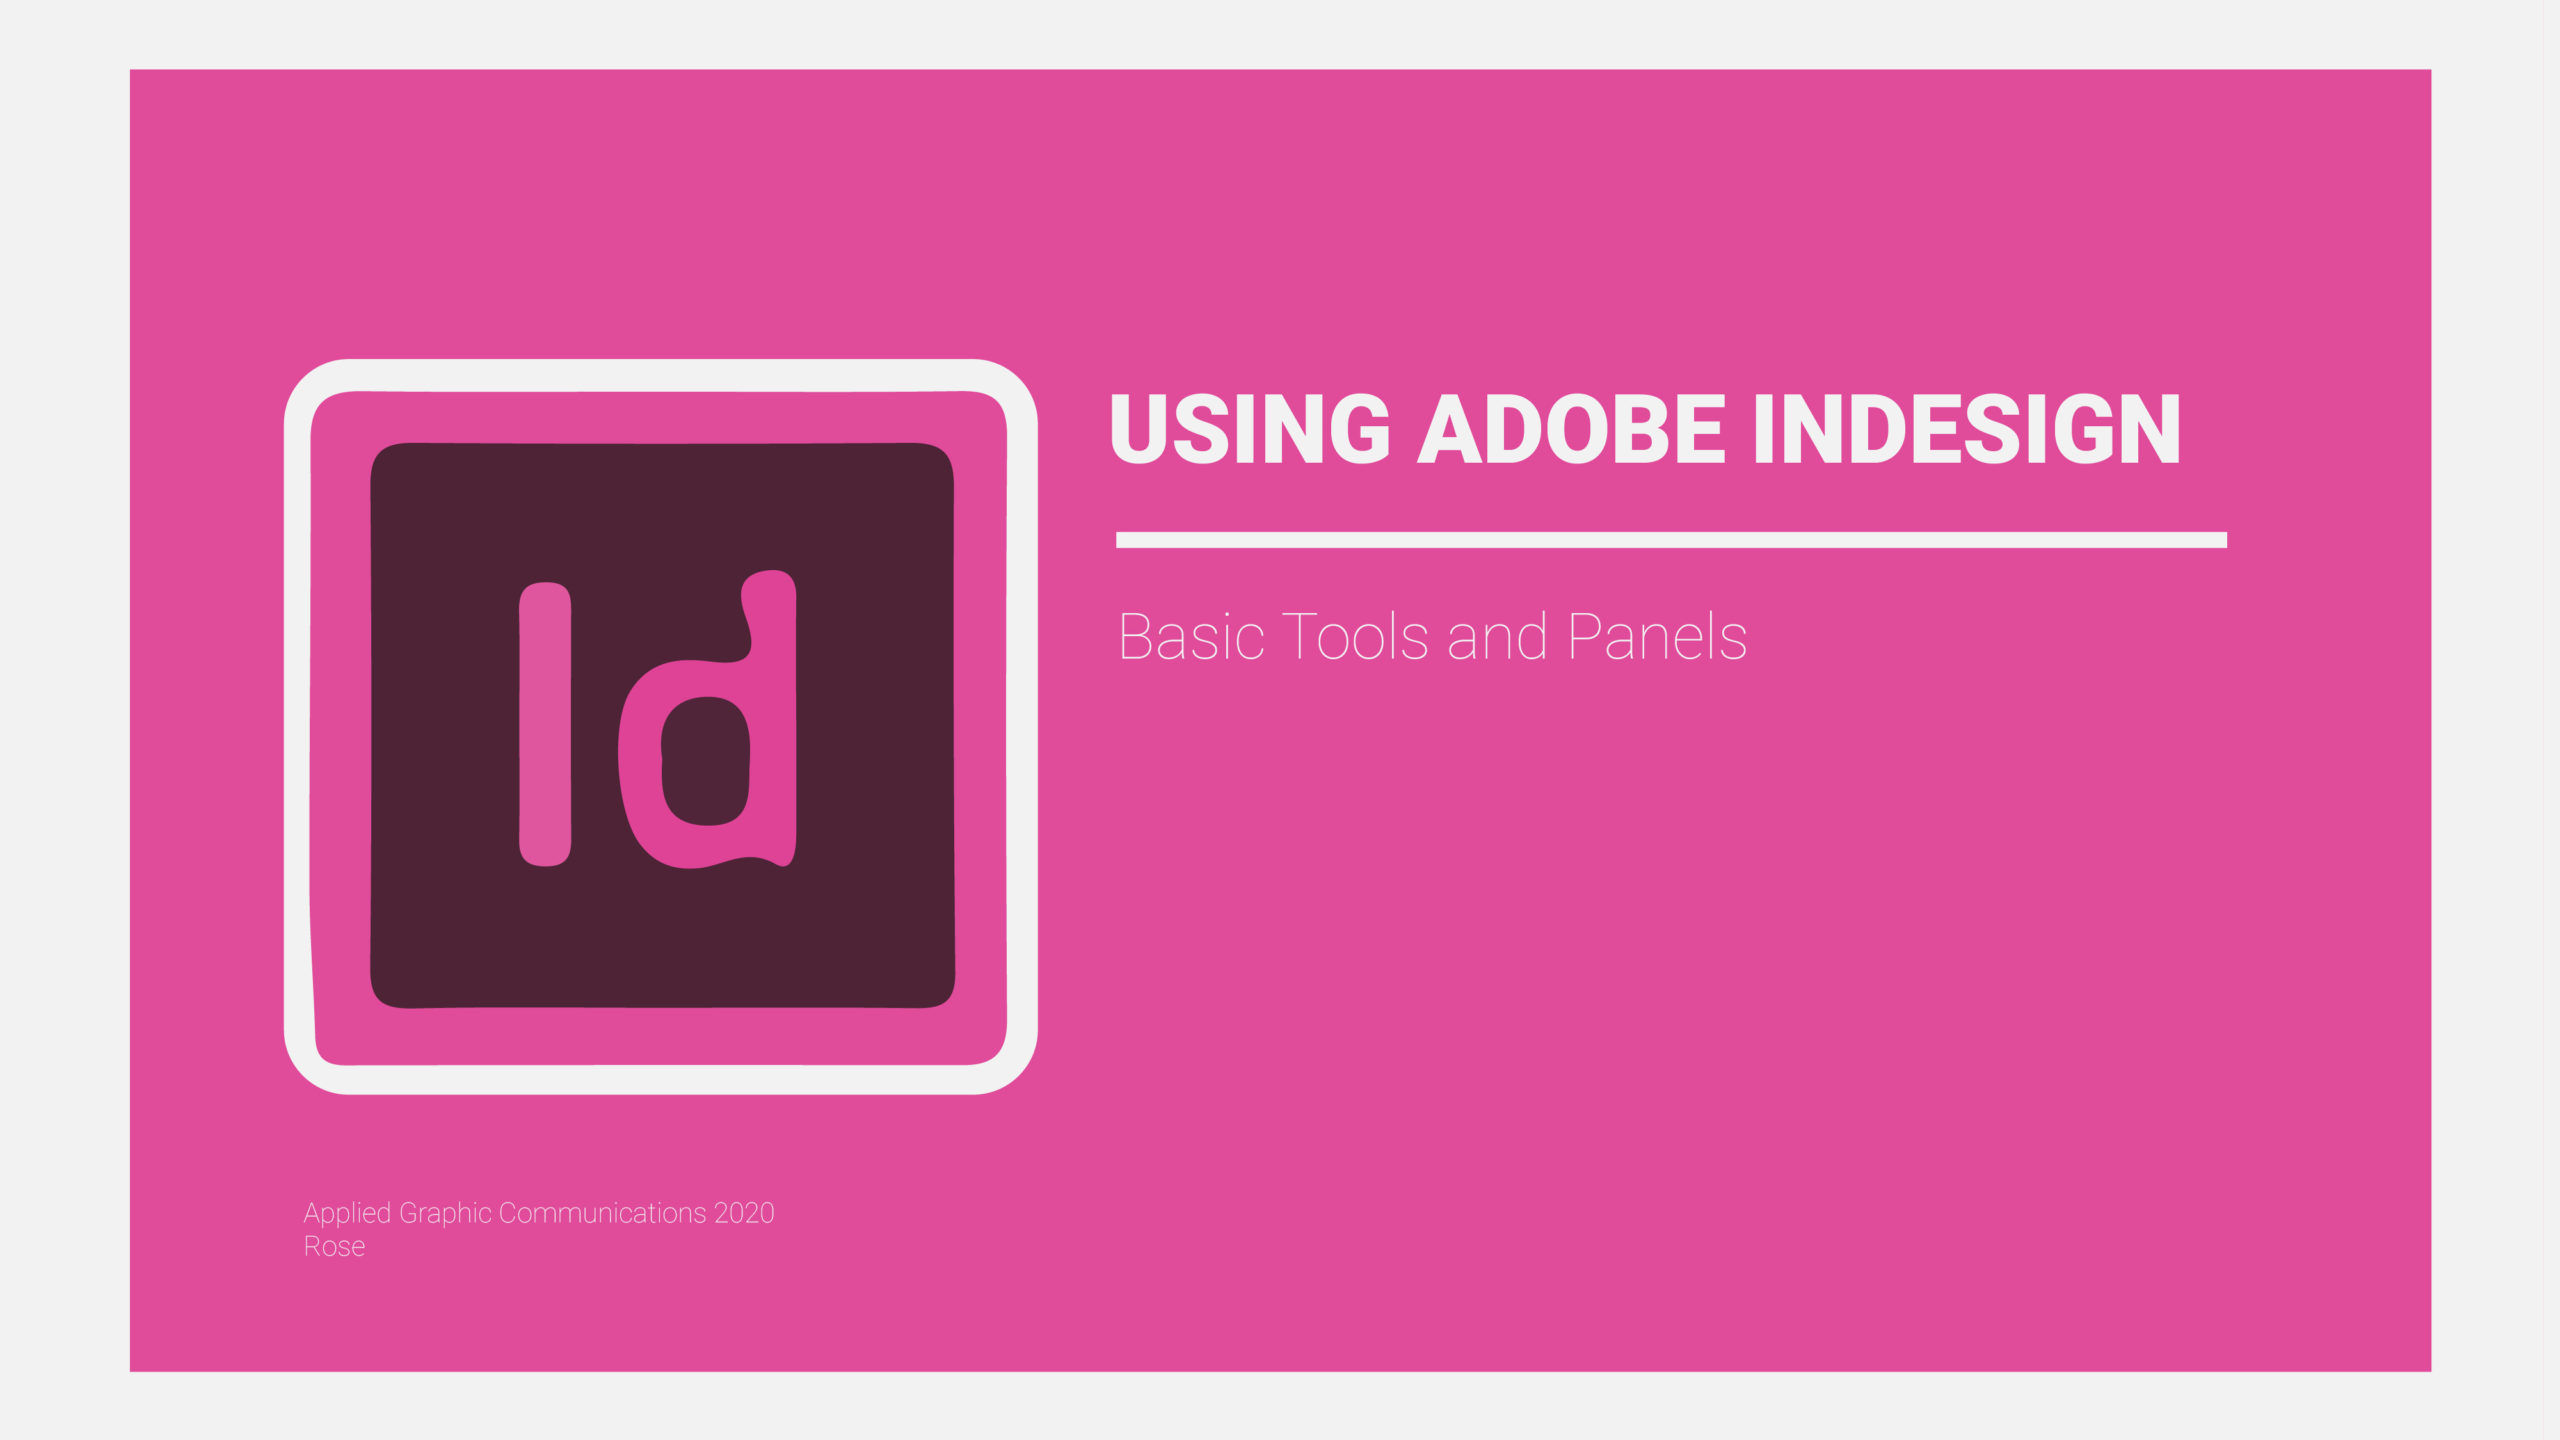 Adobe InDesign Basic Tools Start Screen